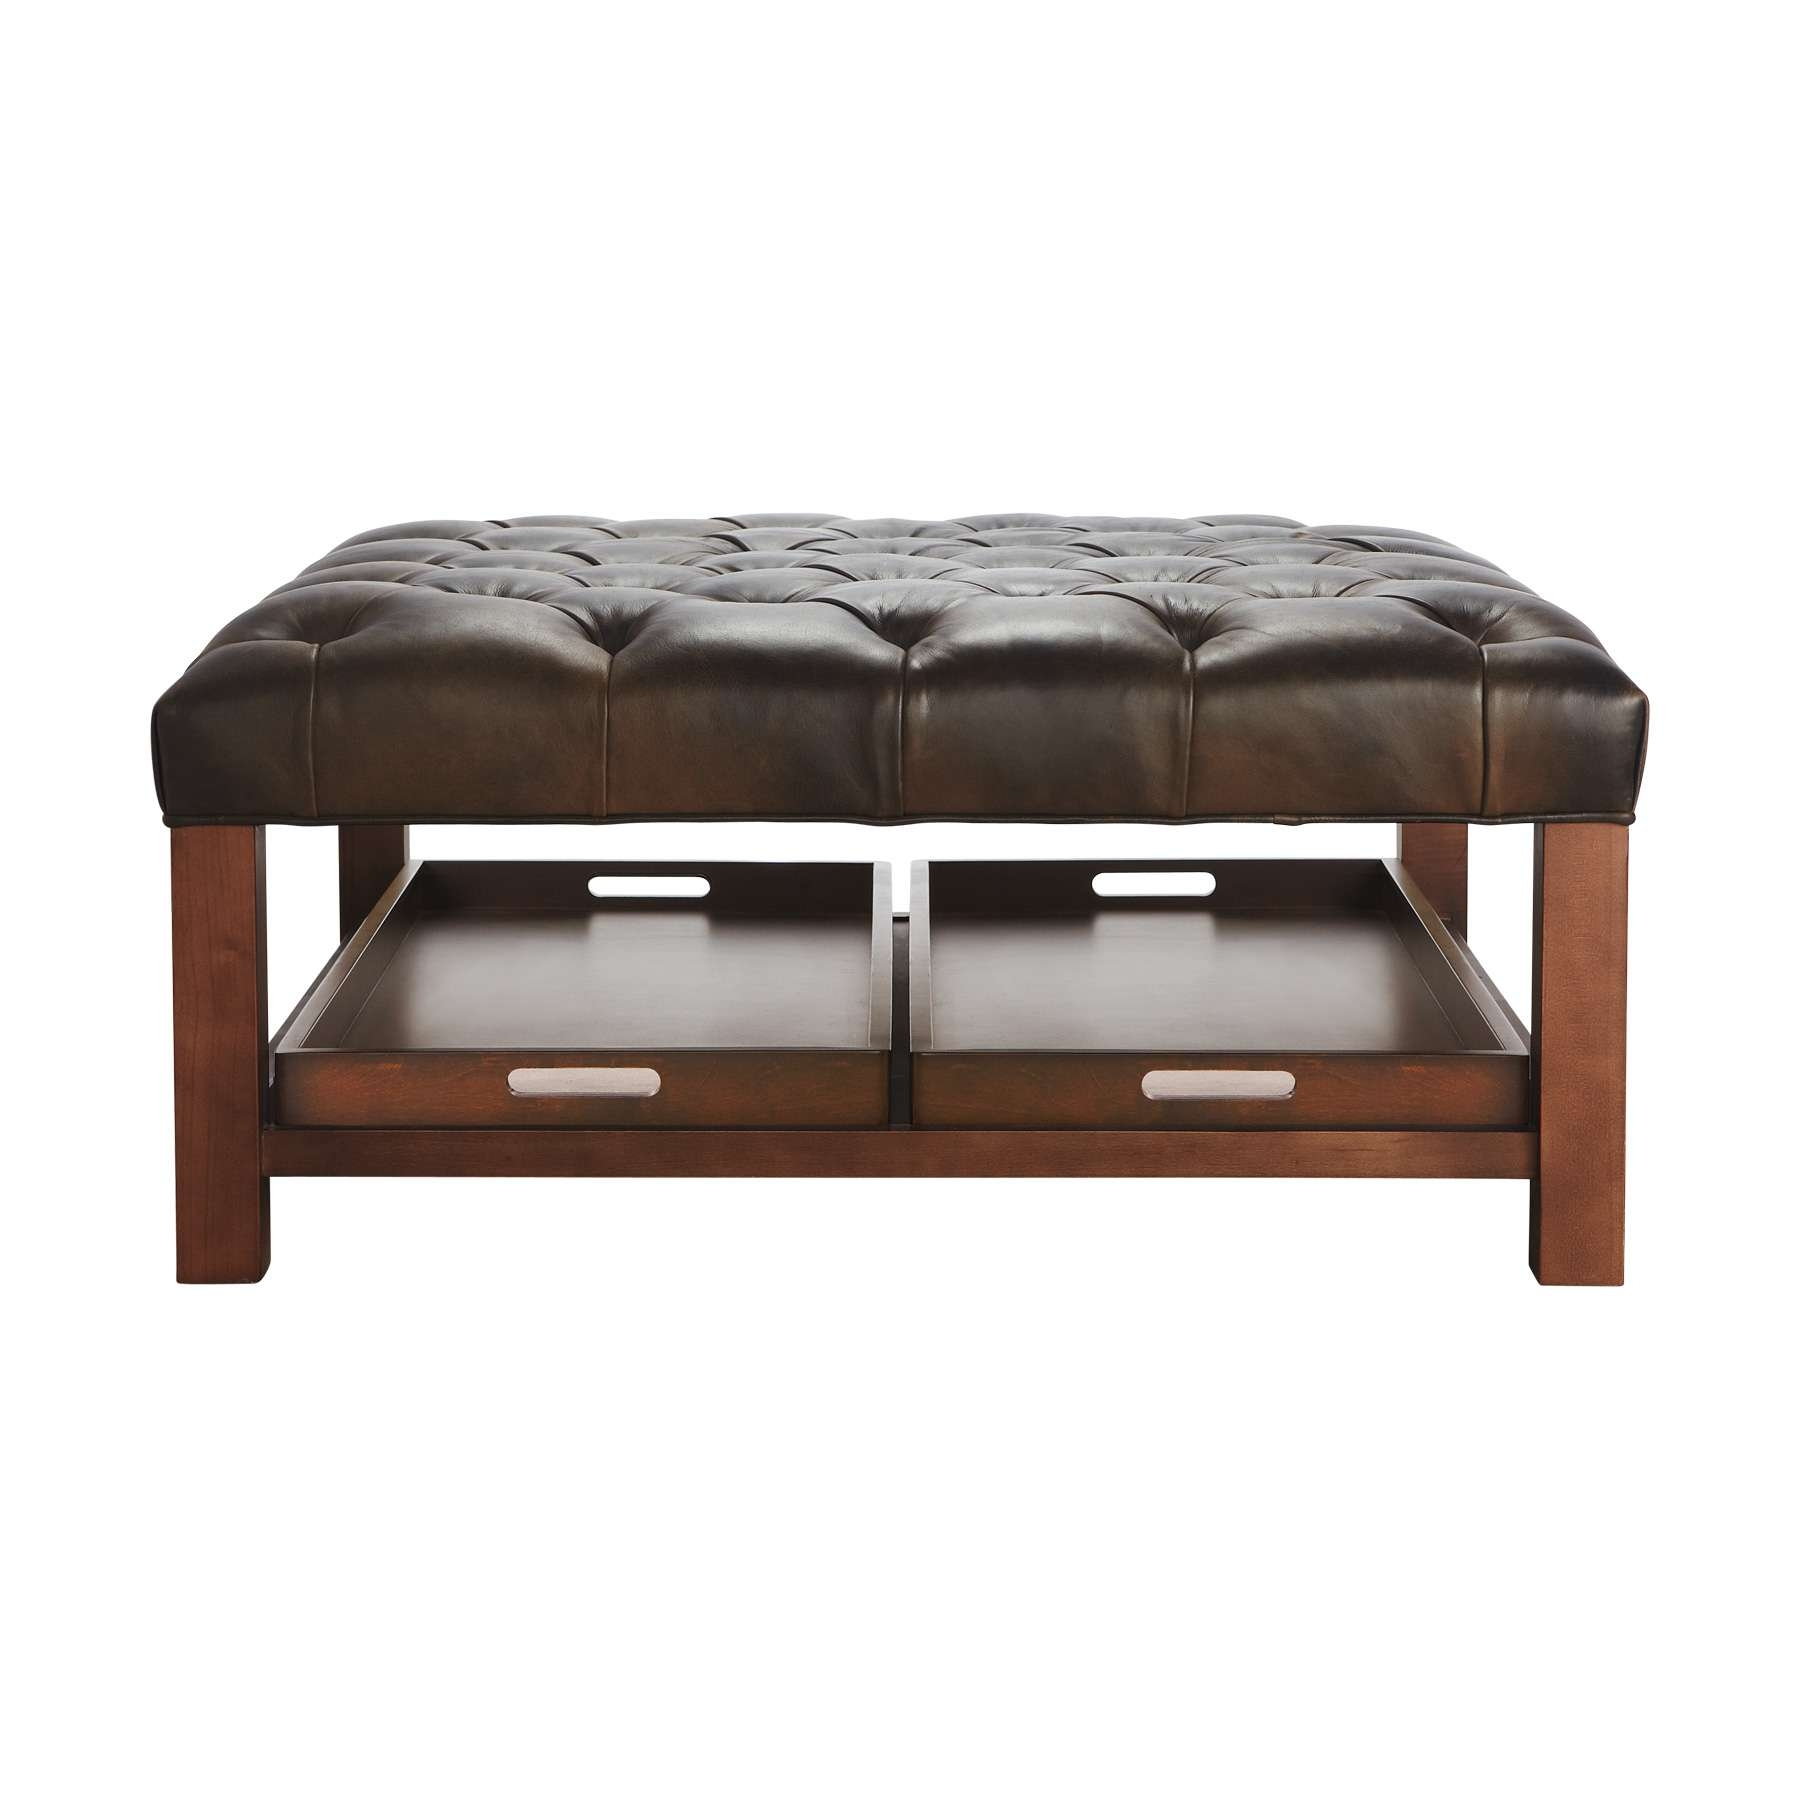 Dark Brown Leather Square Tufted Ottoman Coffee Table With Wooden Throughout Recent Brown Leather Ottoman Coffee Tables (View 10 of 20)